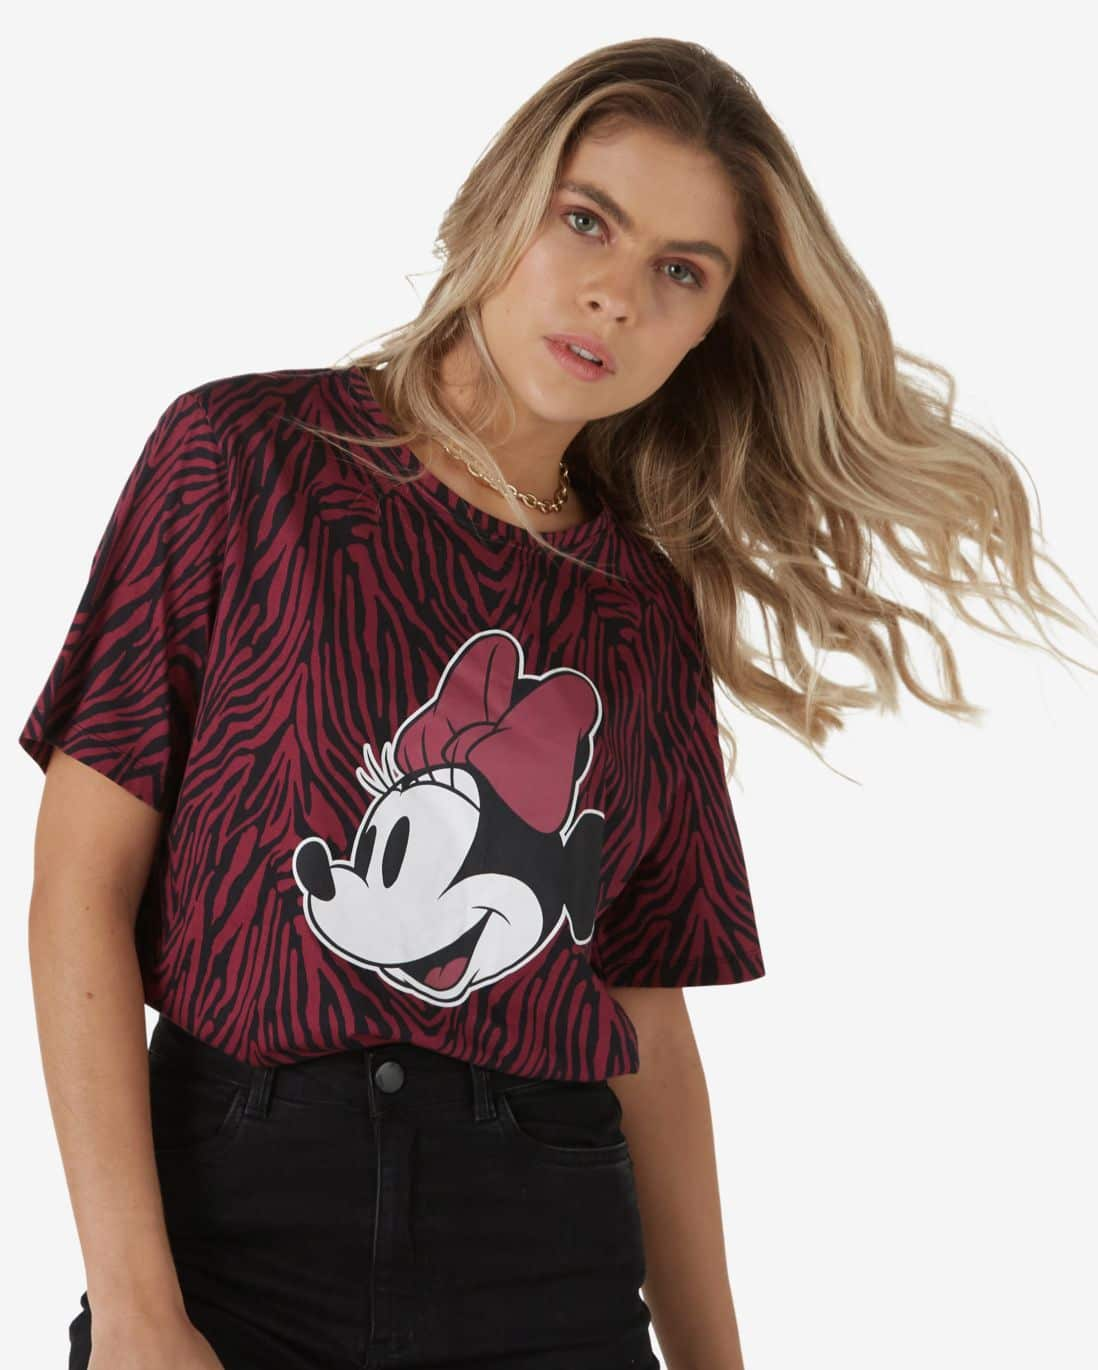 Blusa Alongada Zebra Minnie - Rosa